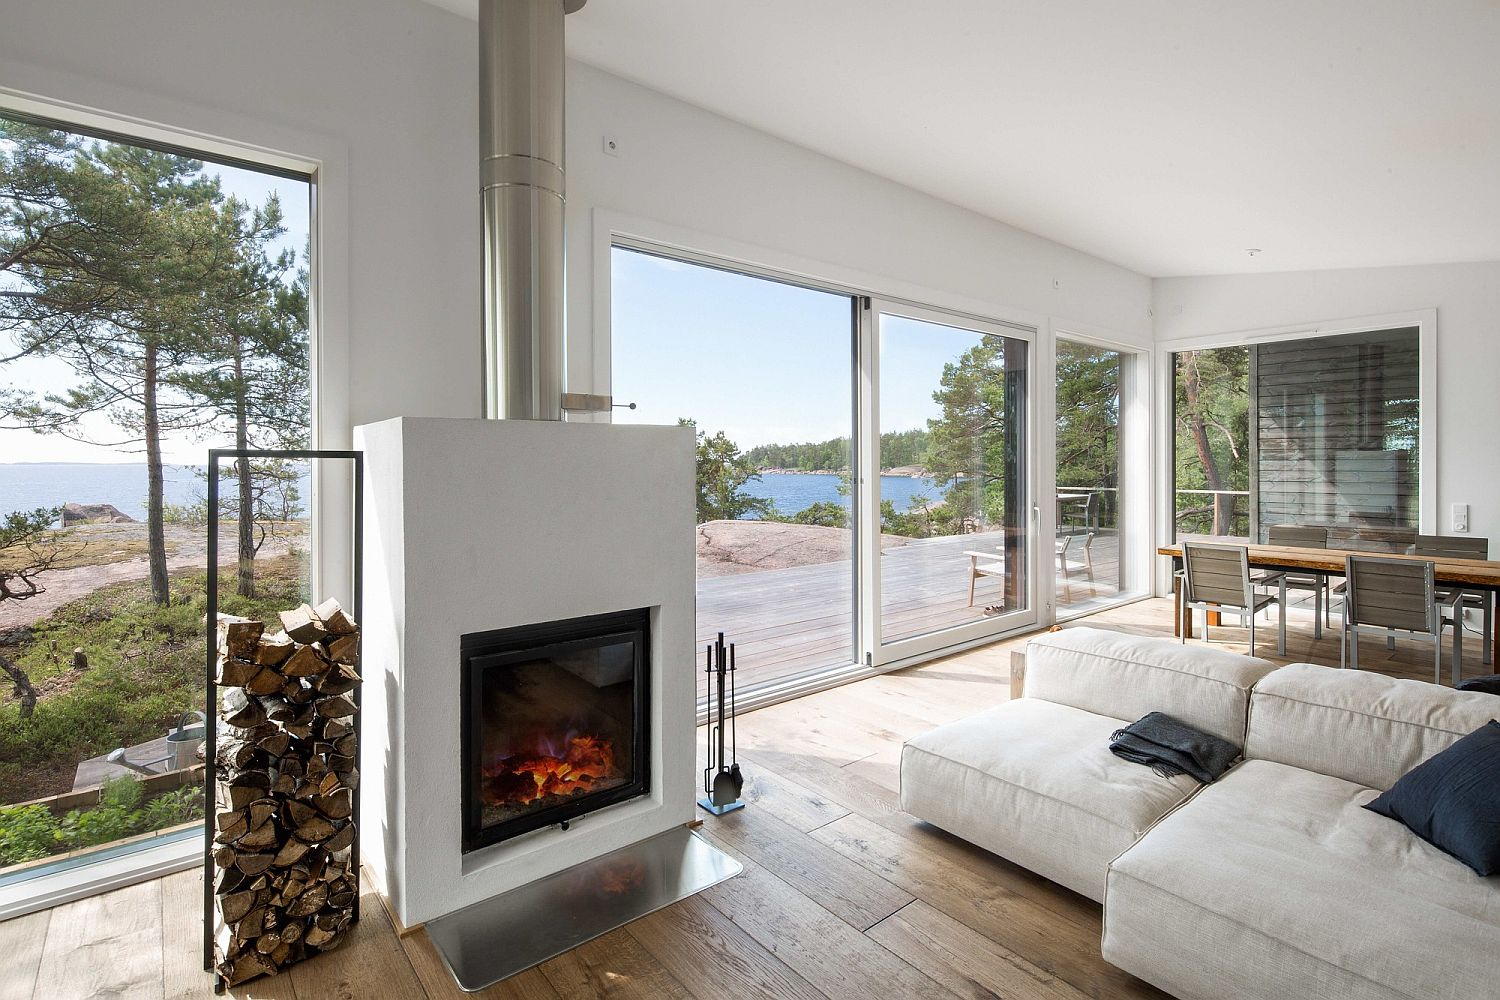 Contemporary fireplace in the living room with a stylish log storage area